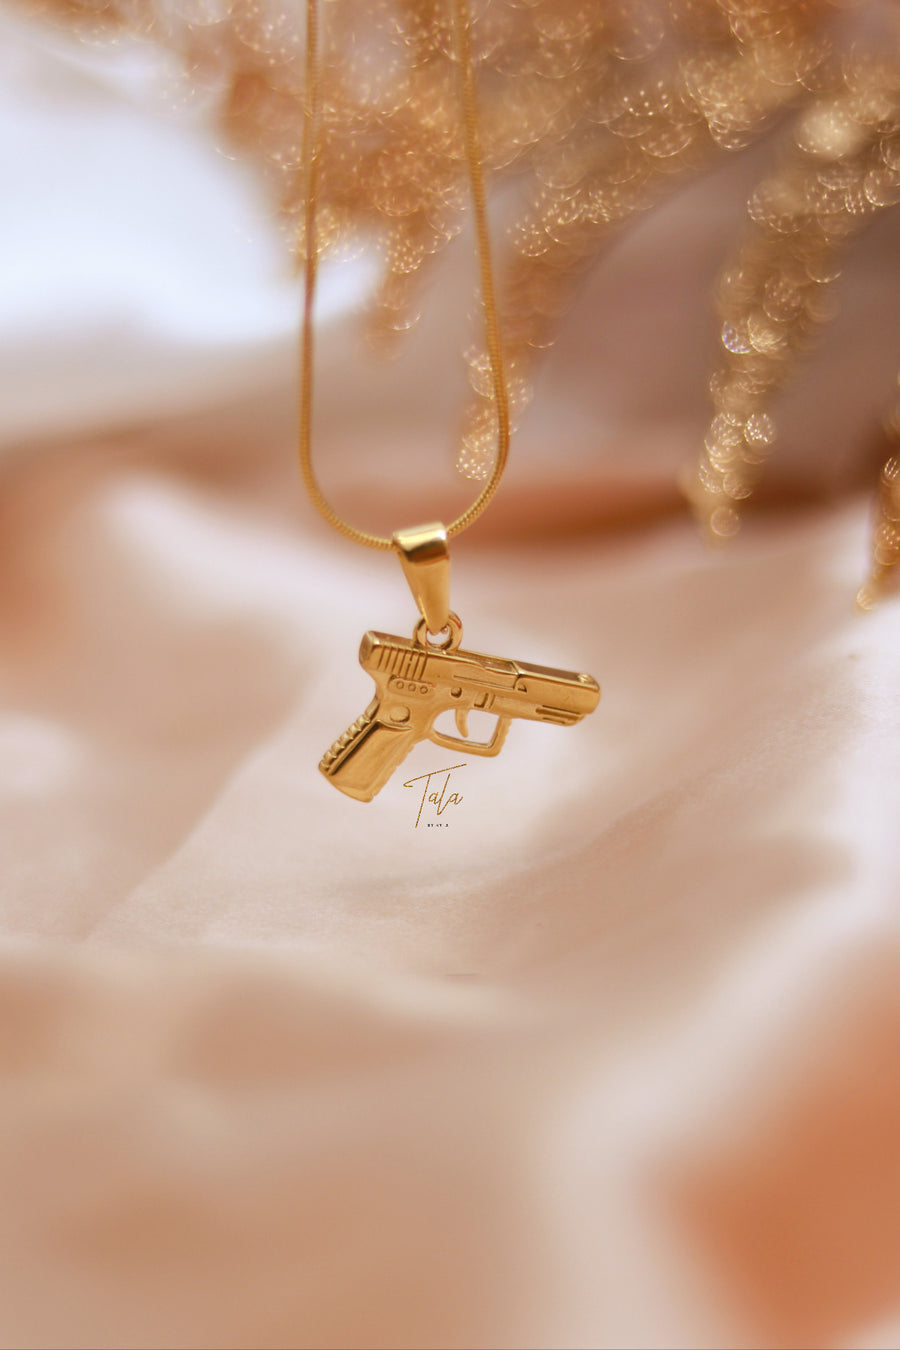 Money Heist Inspired Hand Gun Necklace